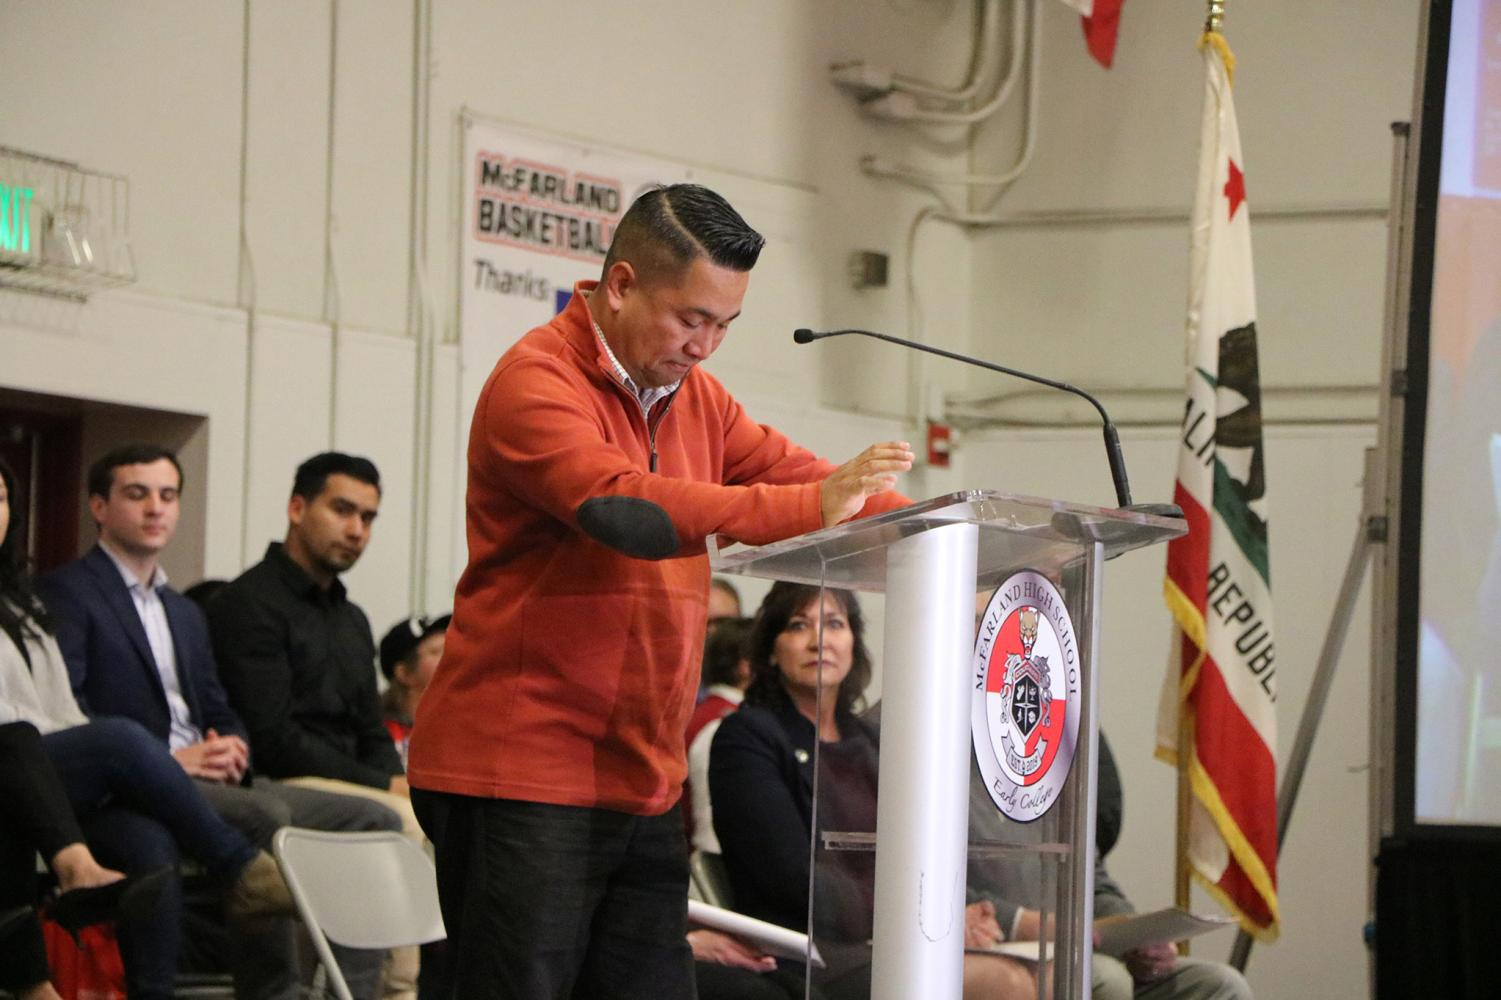 Vice President of the Kern Community College District Romeo Agbalog gets emotional over the moving program that will change MHS student's future.